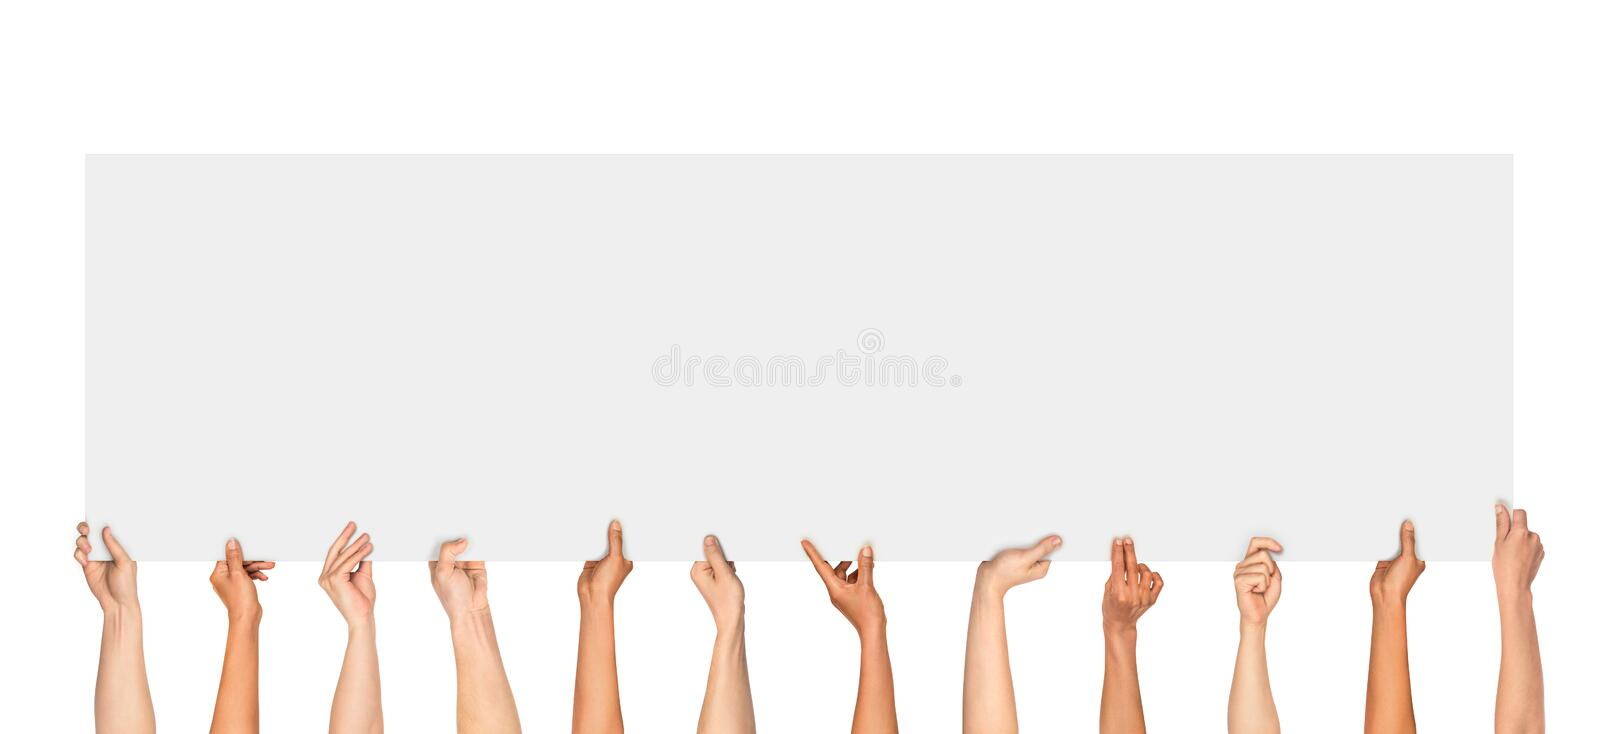 Many hands holding a blank poster for advertising stock image